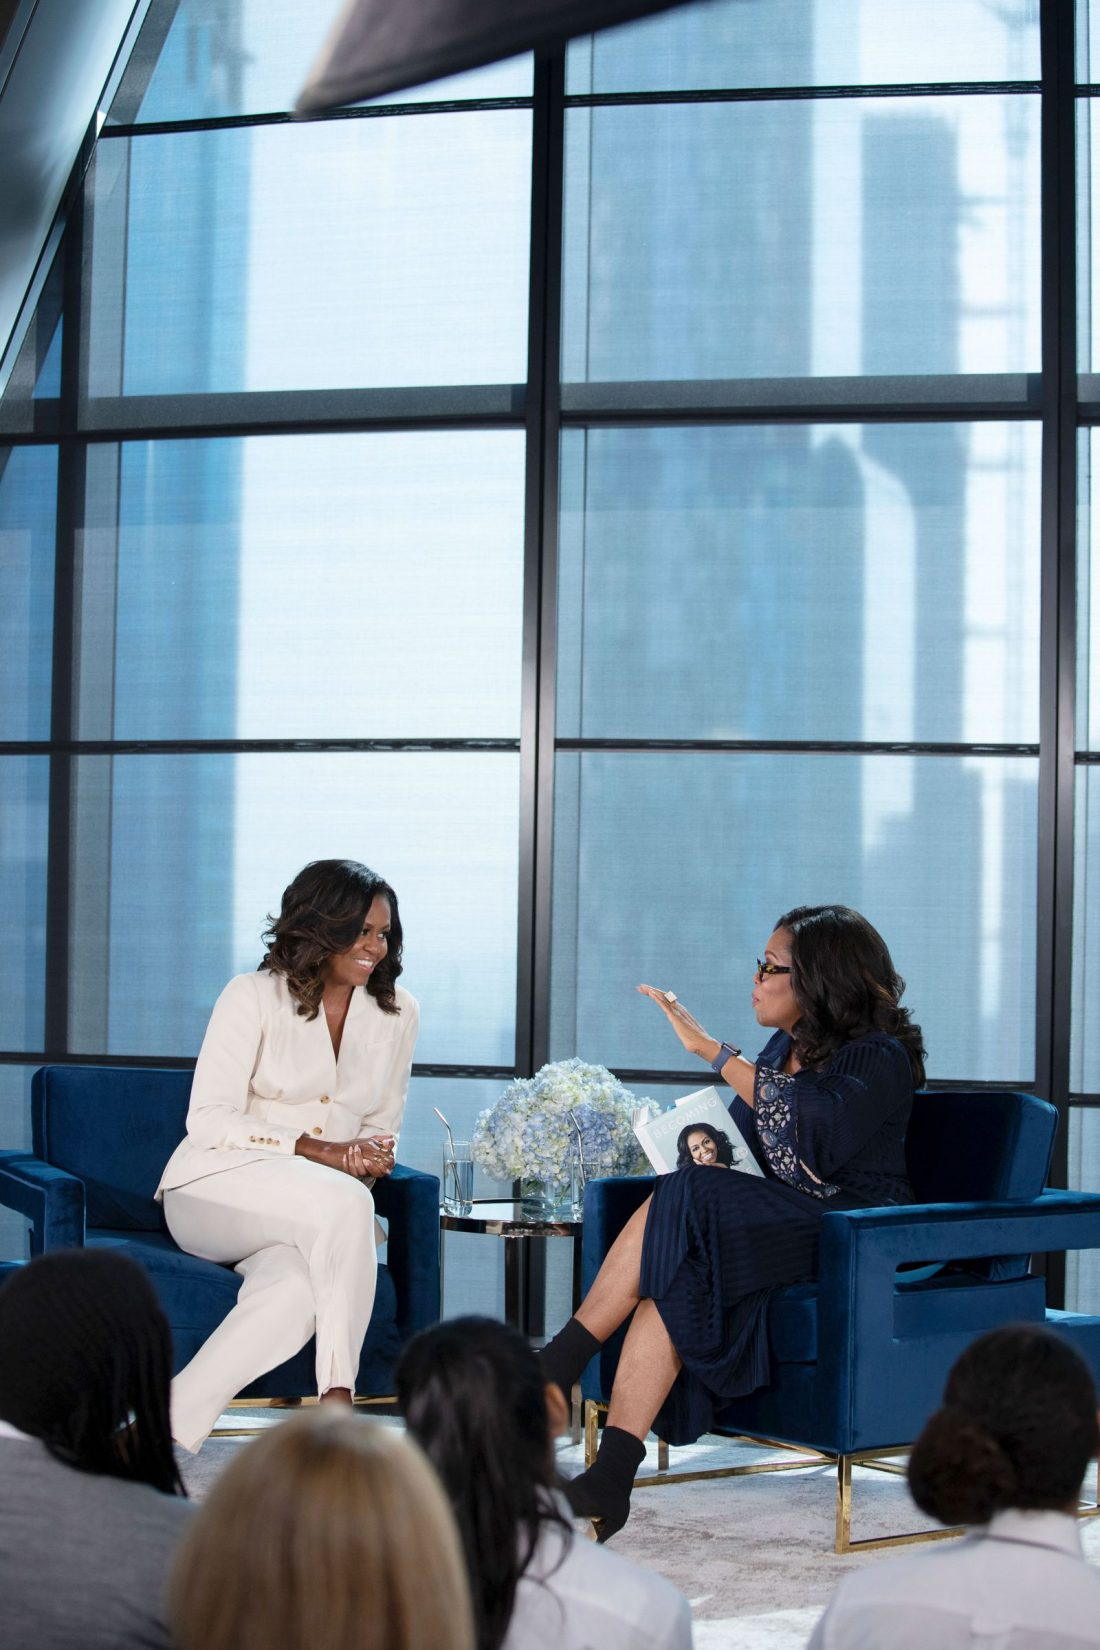 Michelle Obama Opens Up To Oprah In An Exclusive Interview